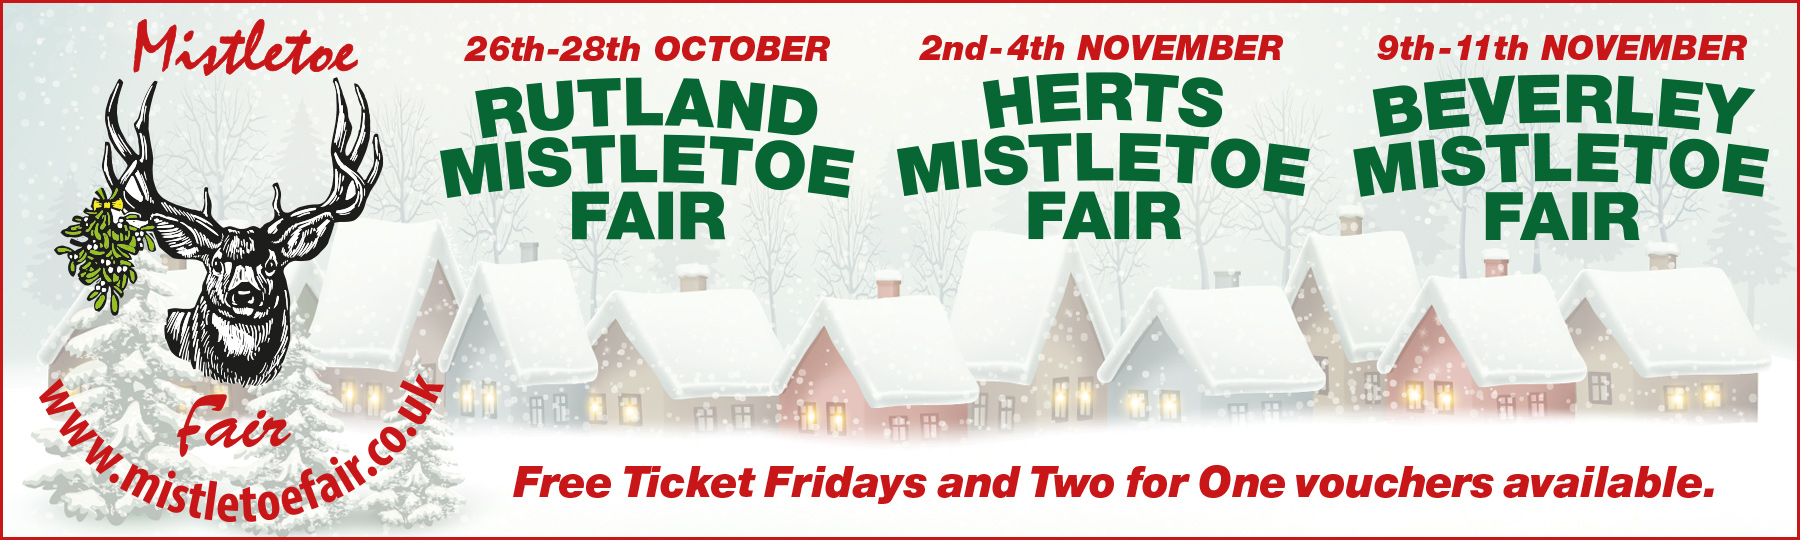 Mistletoe Fair